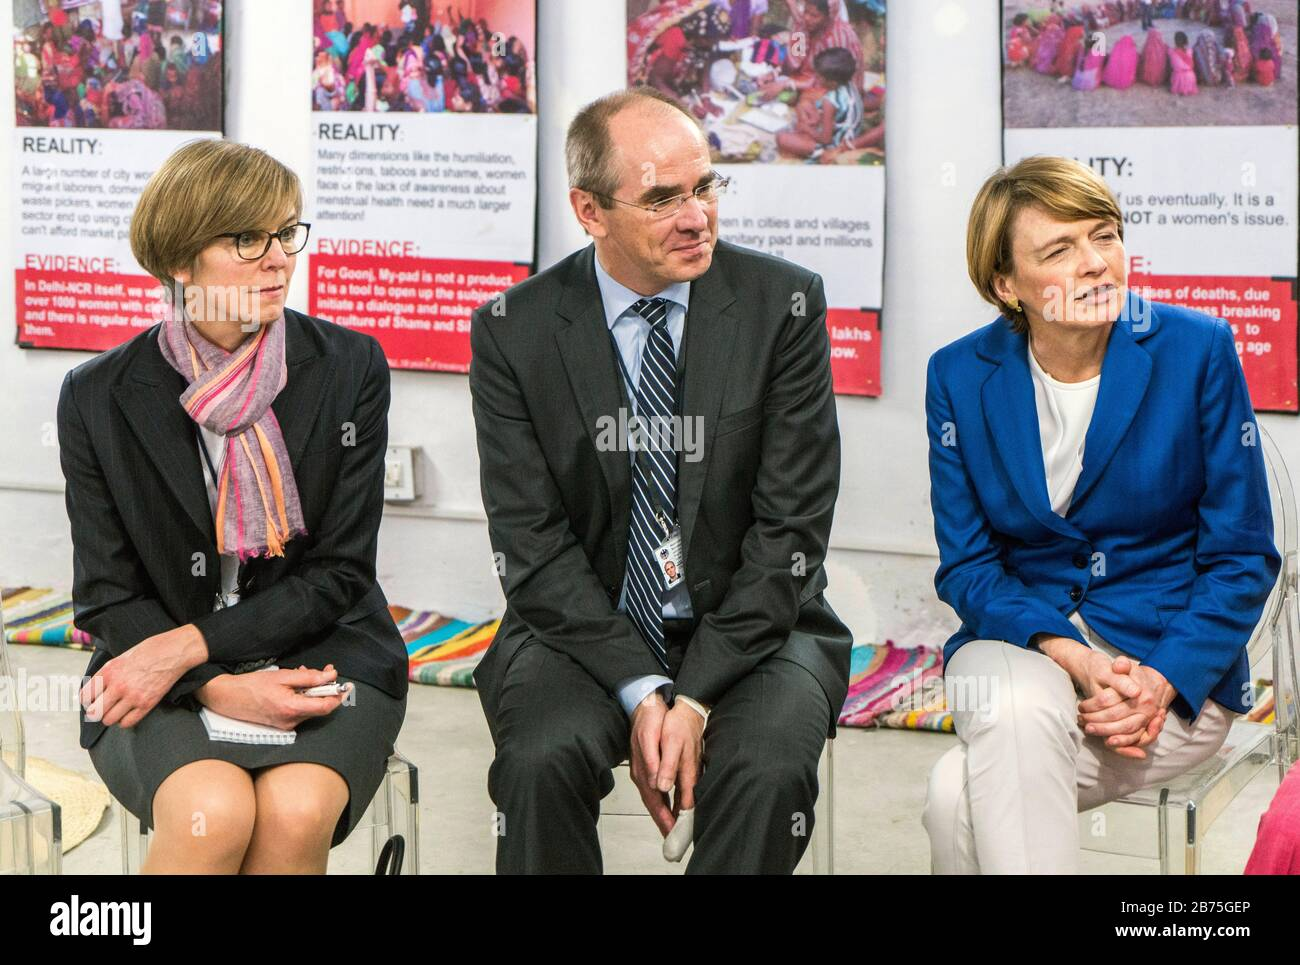 India, New Delhi, 24.03.2018. Trip of the German President and Mrs. Buedenbender to the Republic of India from 21-26.03.2018. Mrs. Buedenbender visits the organisation Goonjin New Delhi on 24.03.2018. From left to right: Perry Notbohm-Ruh, interpreter, Christian Schneider, Managing Director of Unicef Germany and Elke Bedenbender, lawyer and wife of the German President. [automated translation] Stock Photo